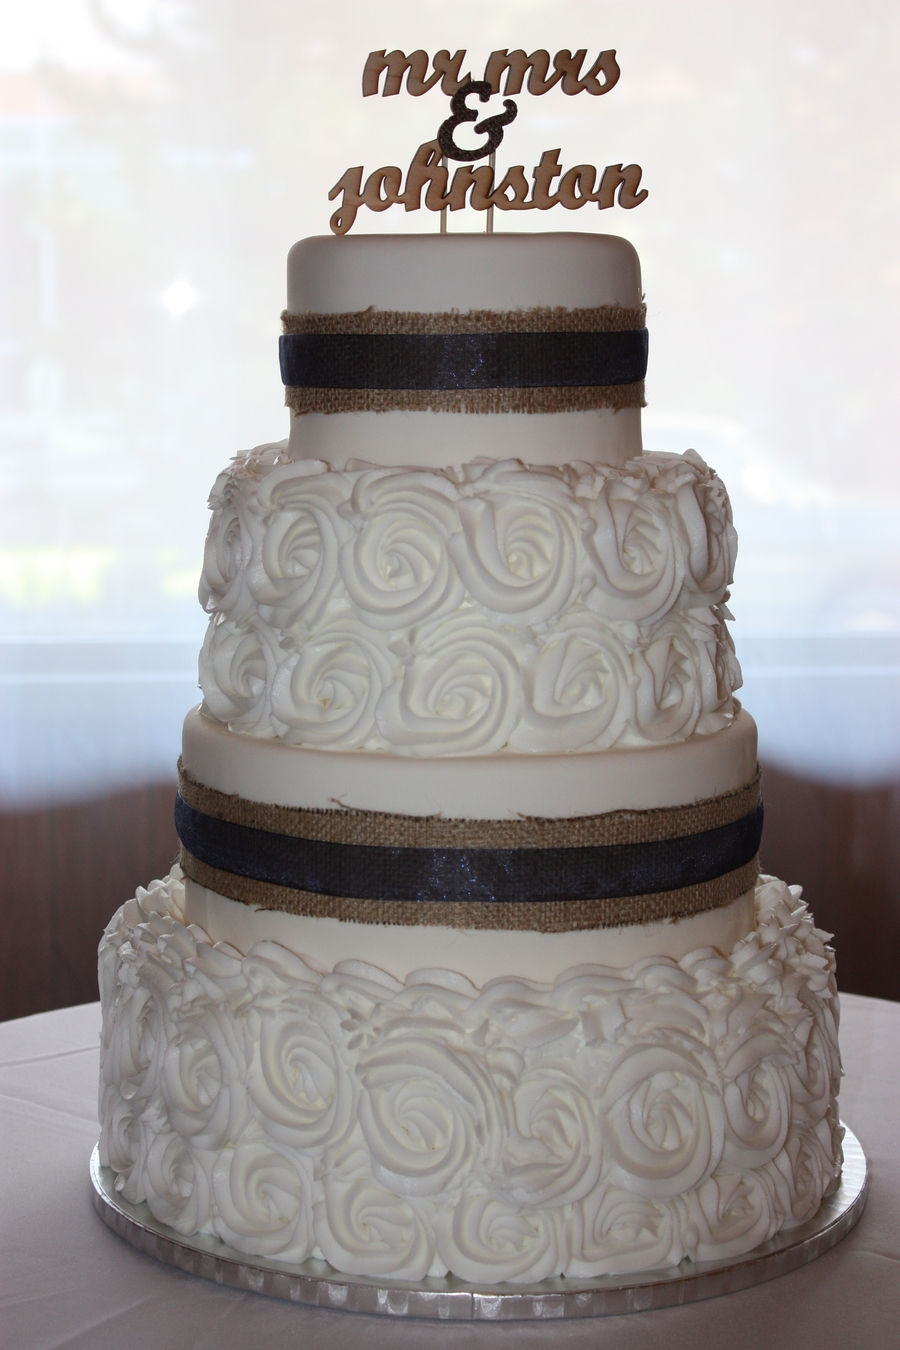 Rustic Elegance on Cake Central